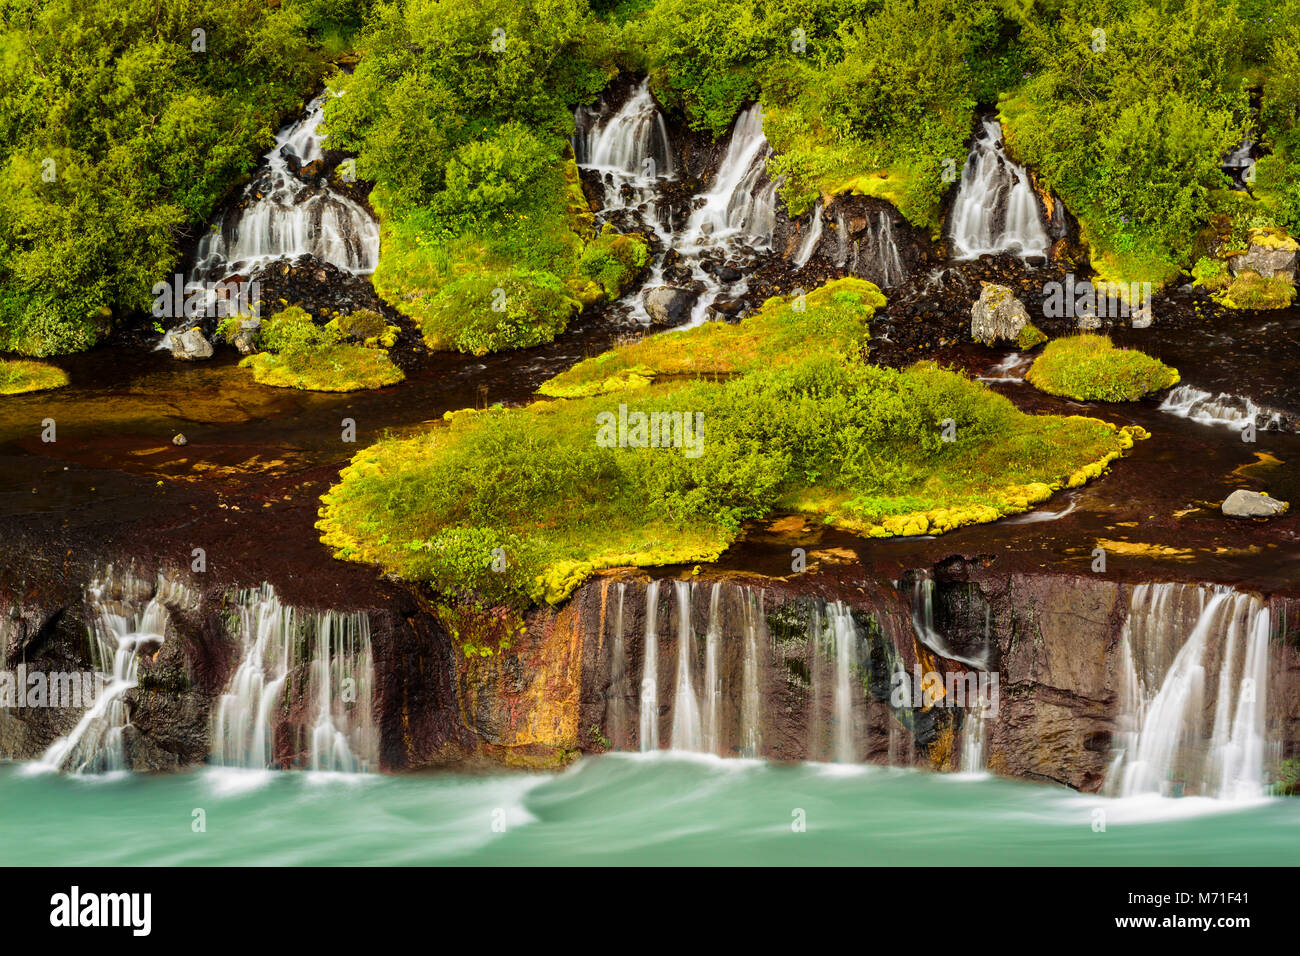 Fascinating waterfall of Hraunfossar in Iceland. - Stock Image